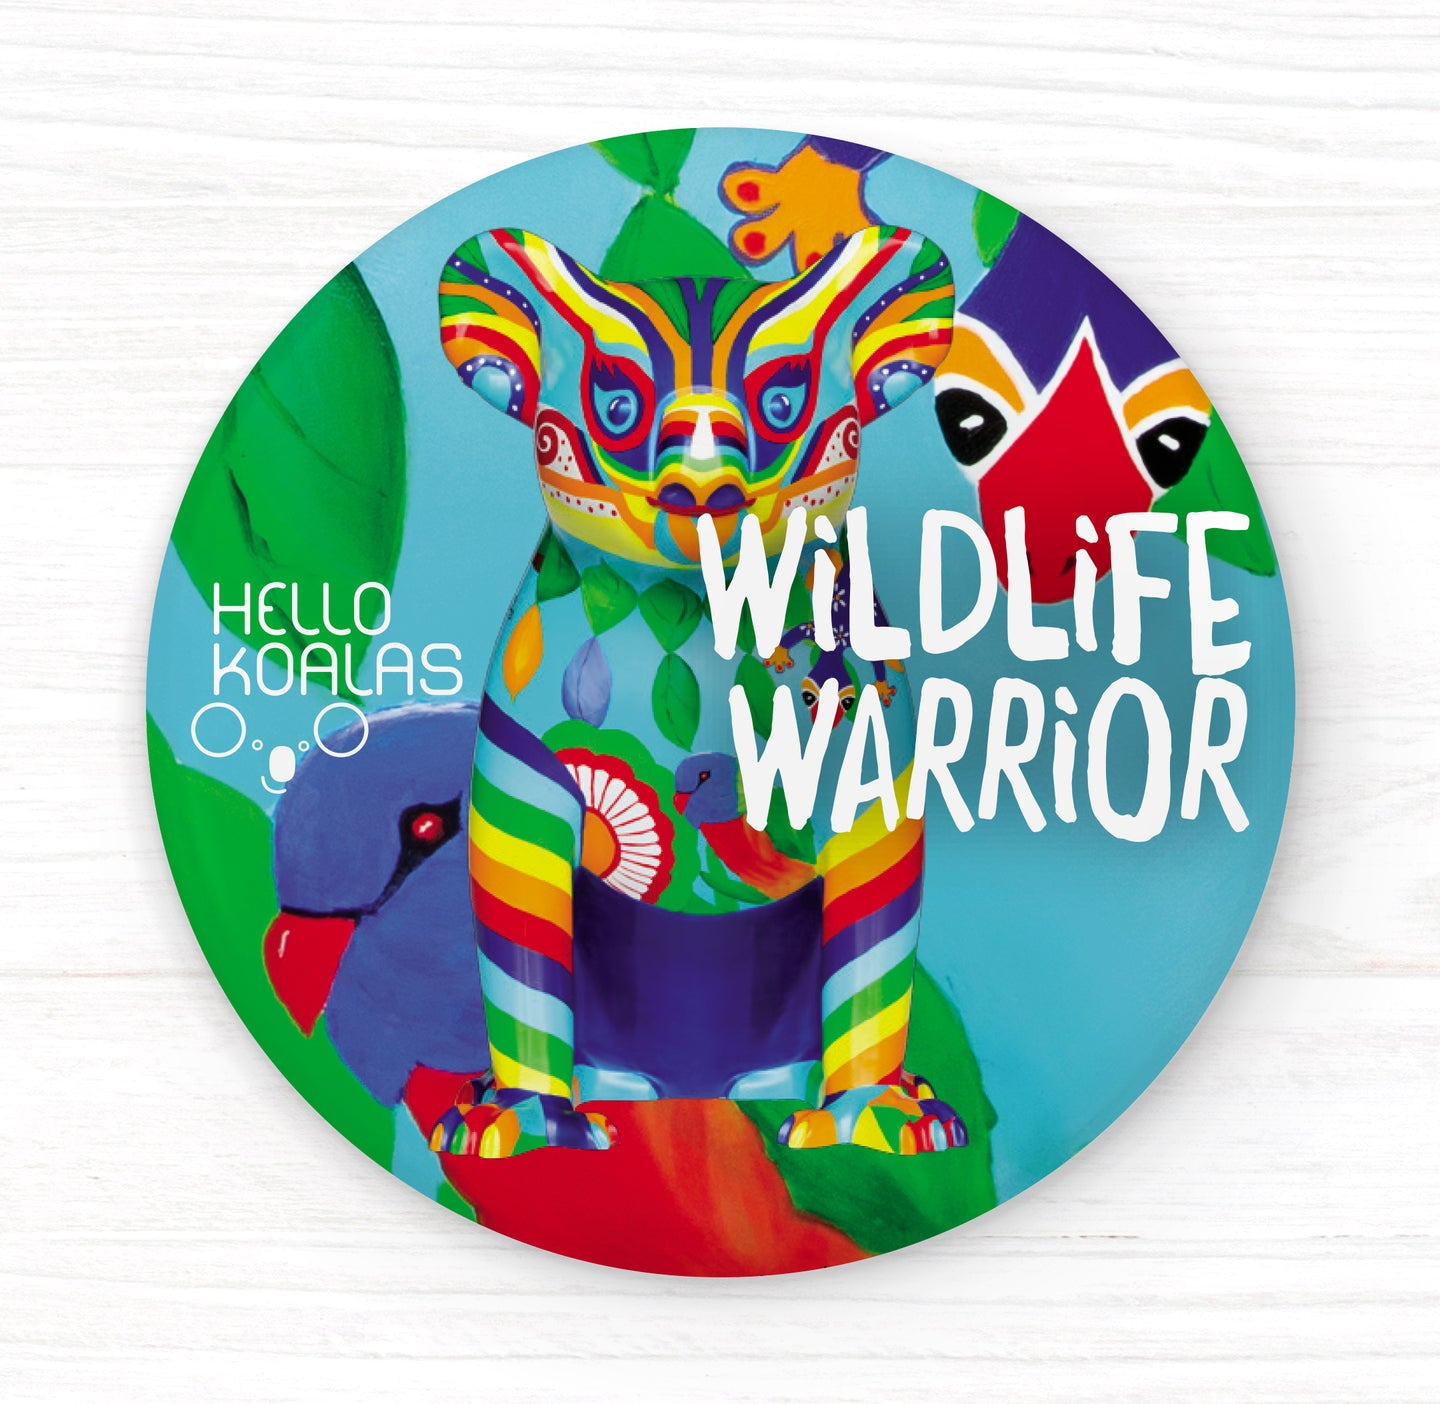 Hello Koalas Wildlife Warrior Badge